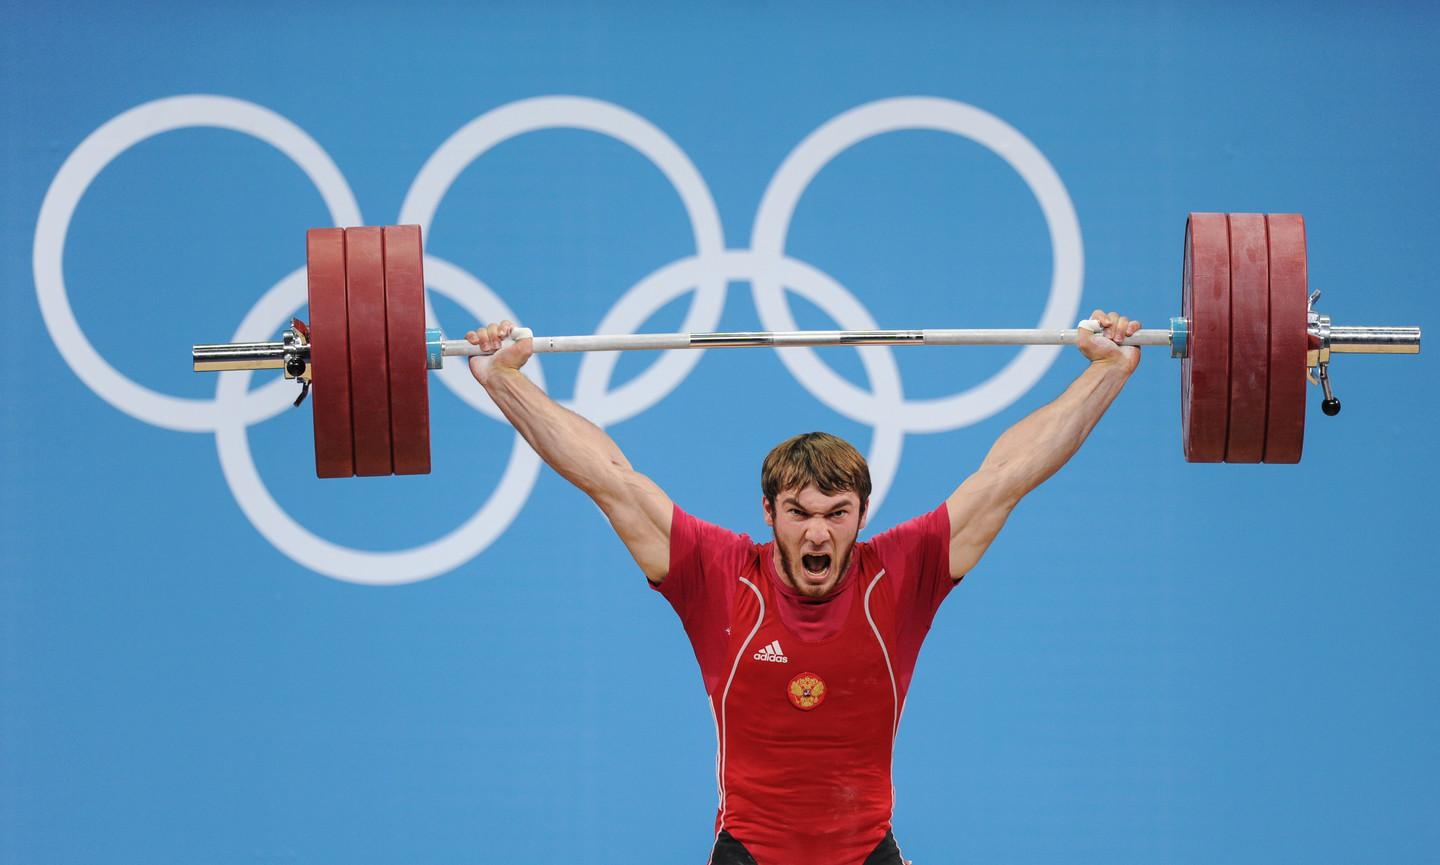 IWF disqualifies Russian team from Rio Olympics